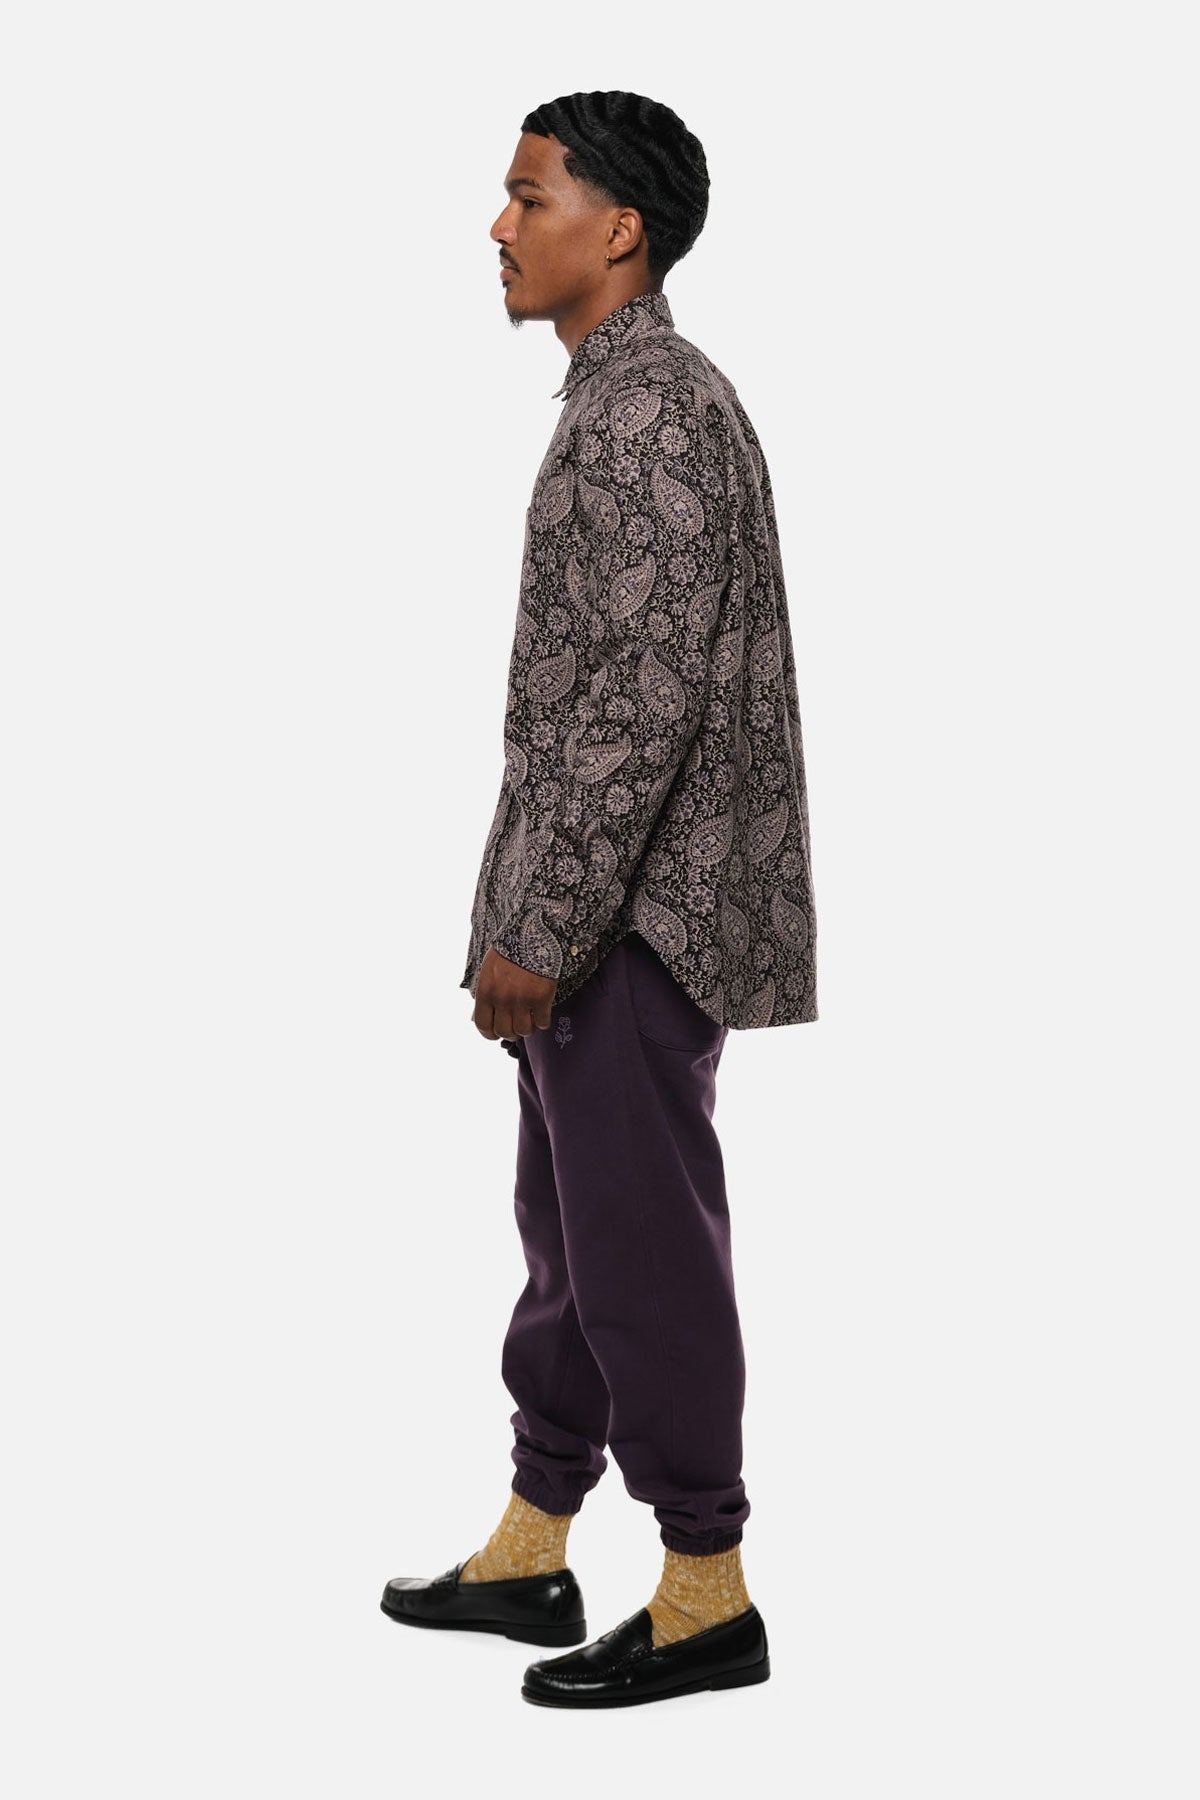 1905 SHIRT IN PURPLE PAISLEY - Fortune Goods